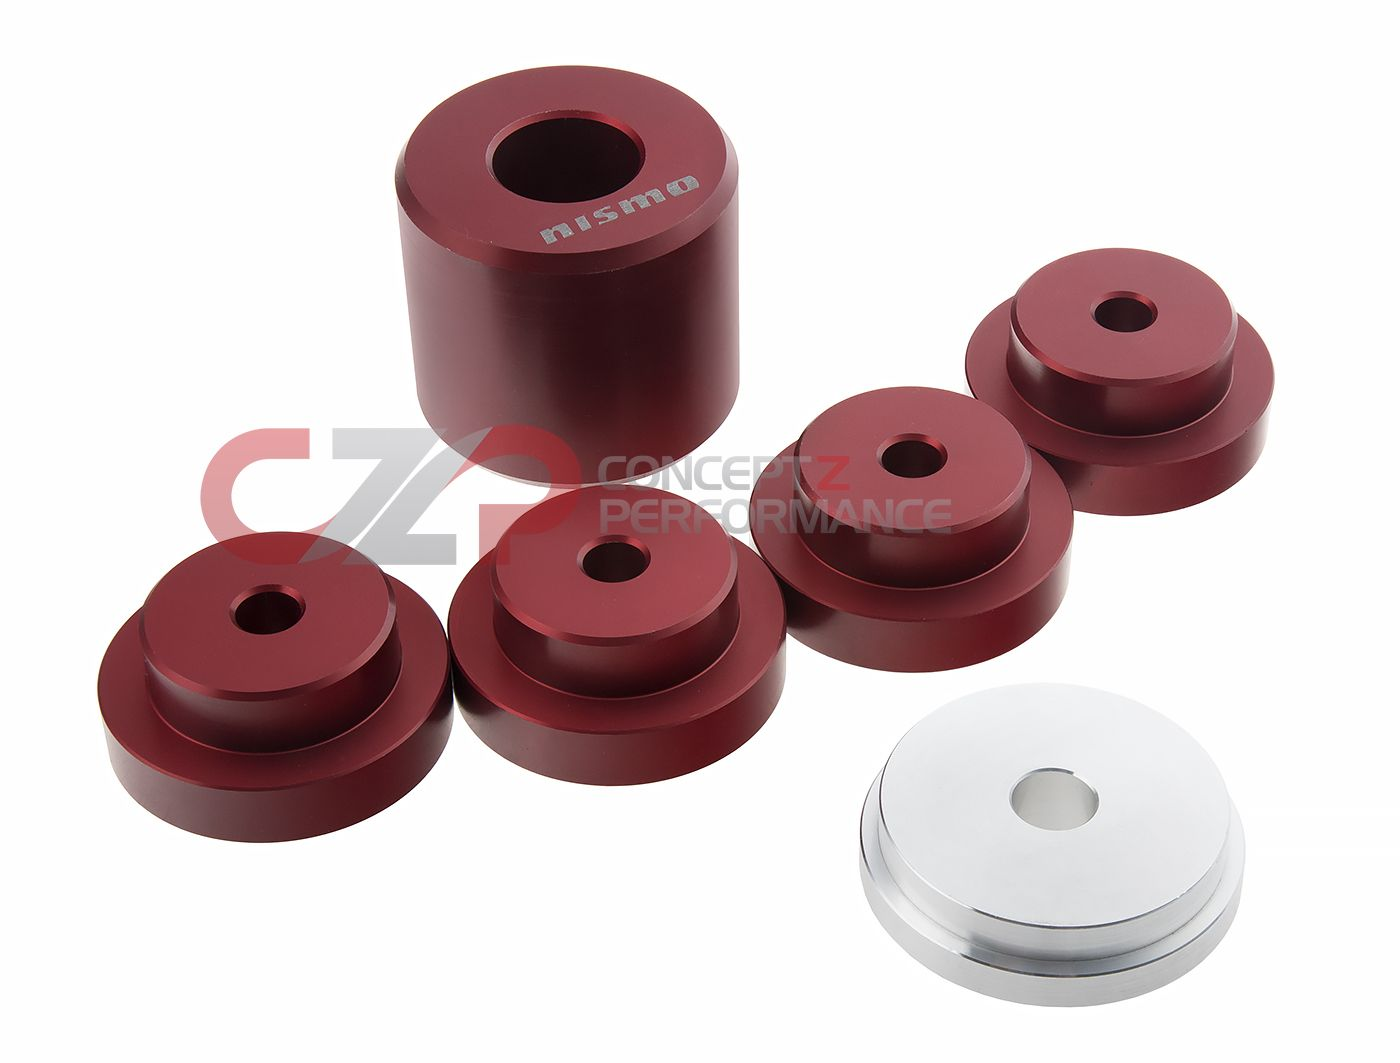 Nismo Solid Differential Bushing Set - Nissan 370Z / Infiniti G37